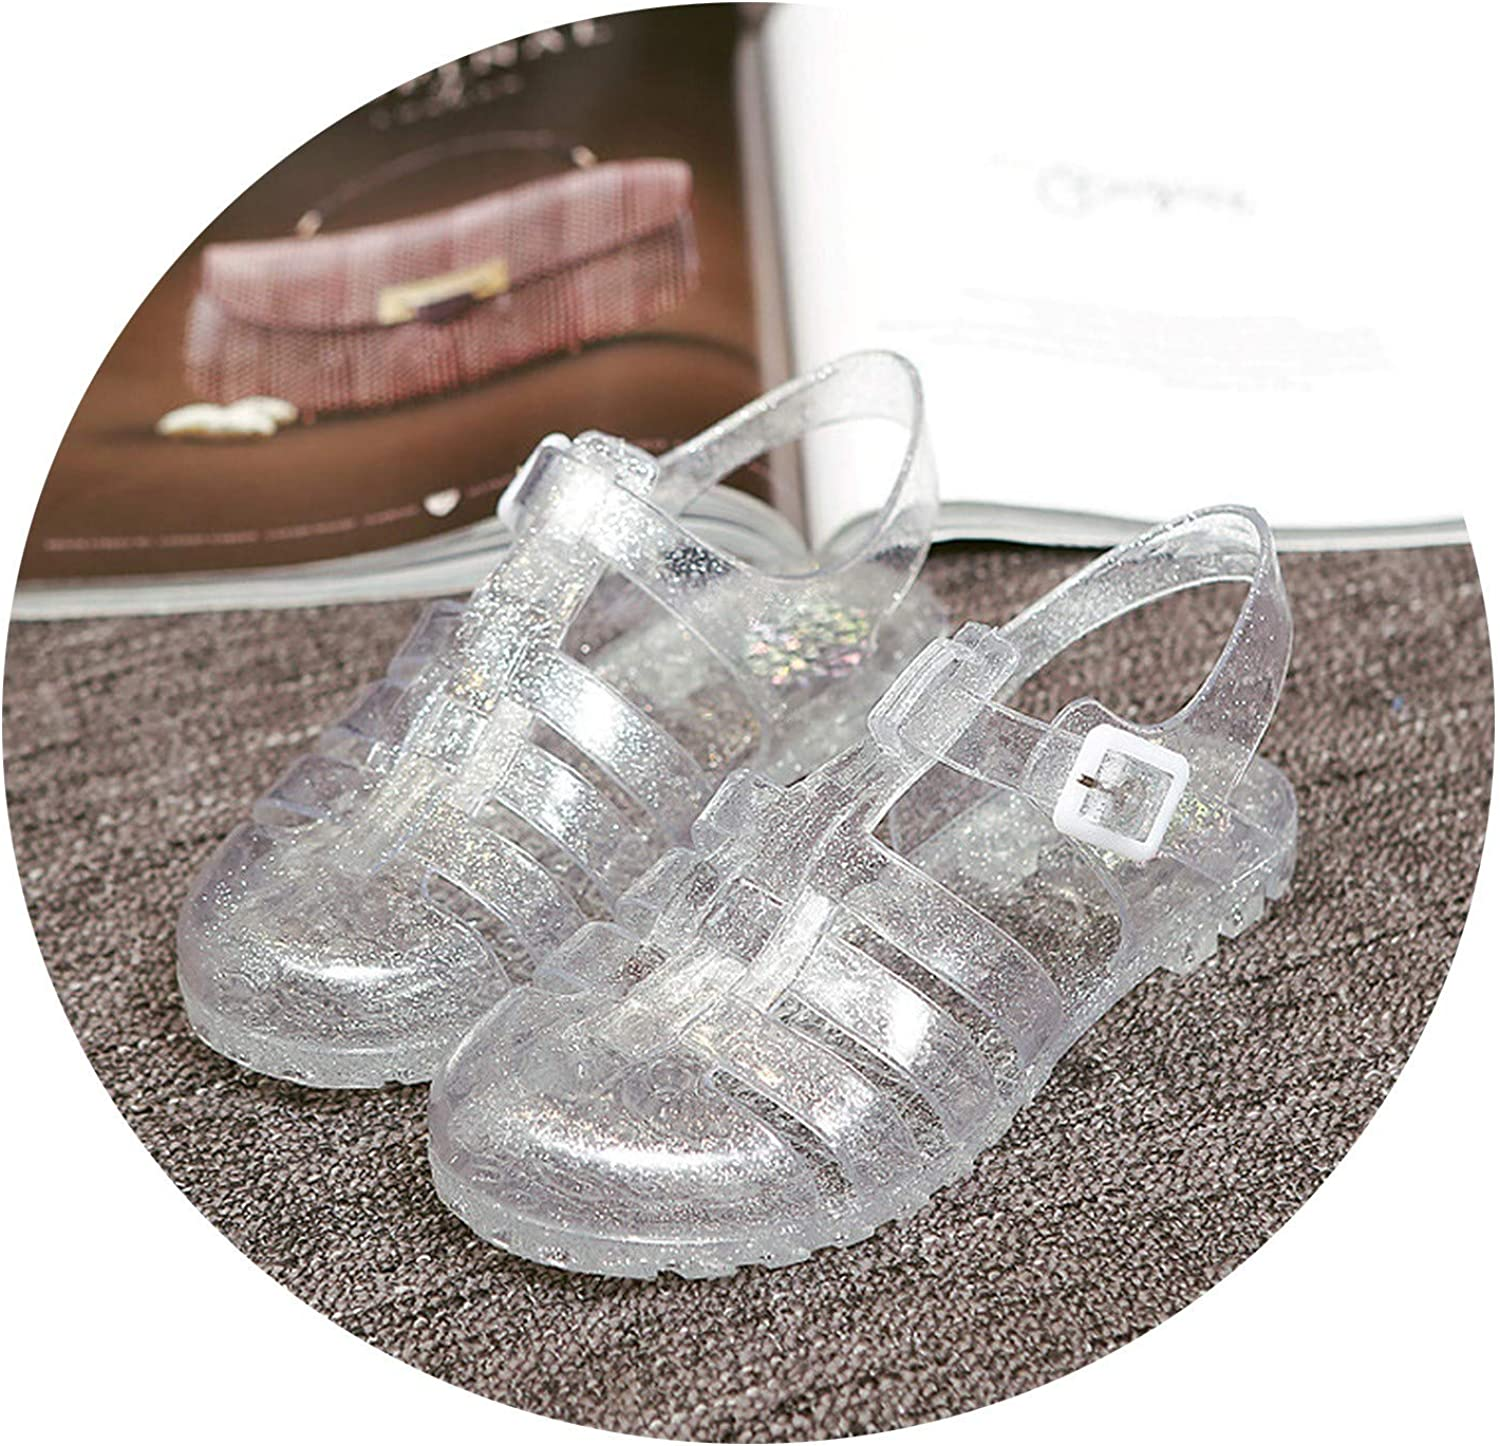 Efficiency 2019 Summer Sandals Female Crystal Jelly shoes Beach shoes Boots Slip Plastic shoes Students